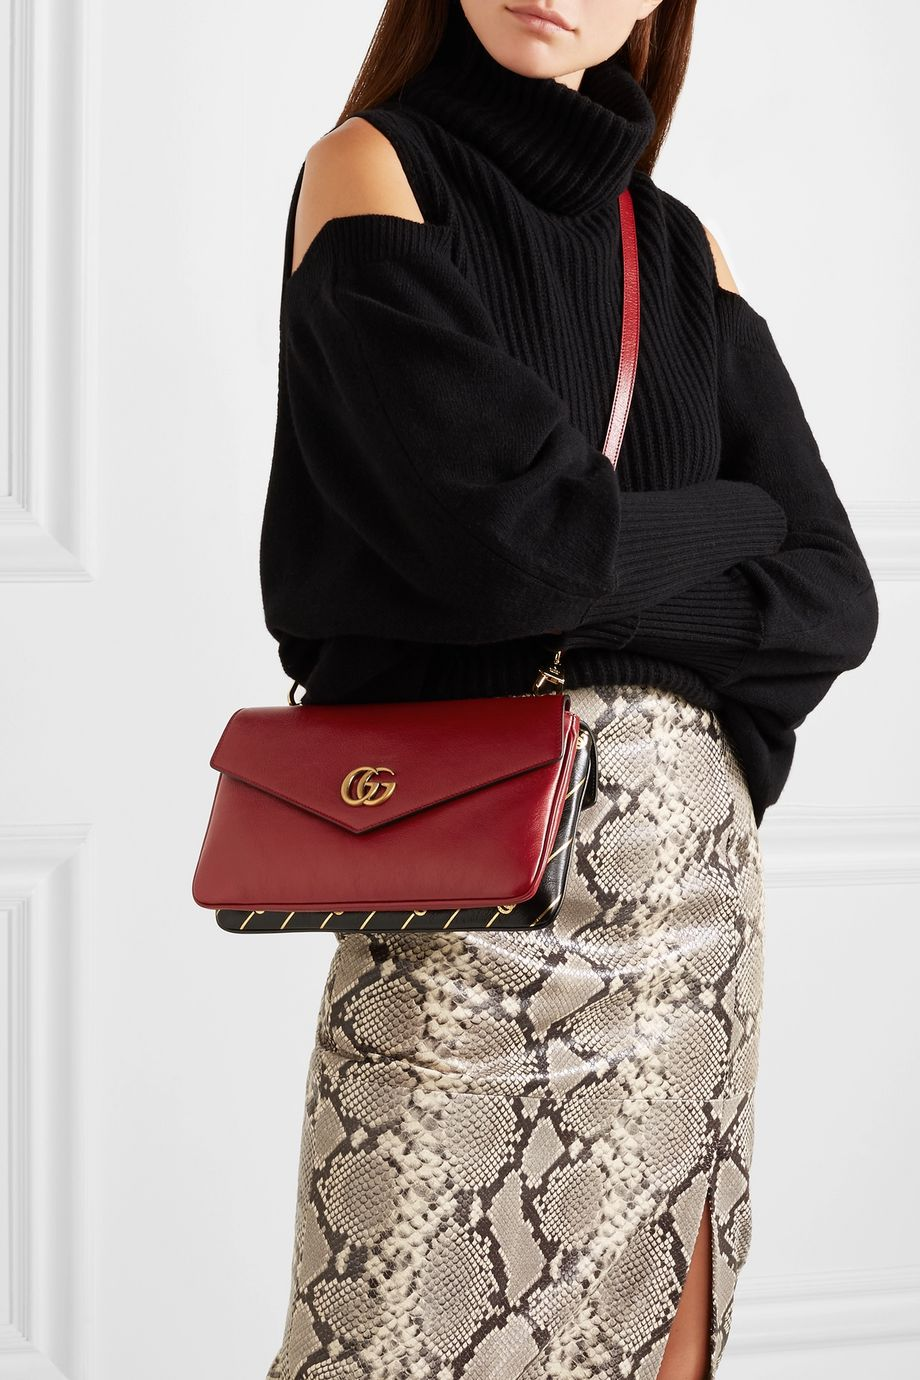 Gucci Thiara embellished printed leather shoulder bag